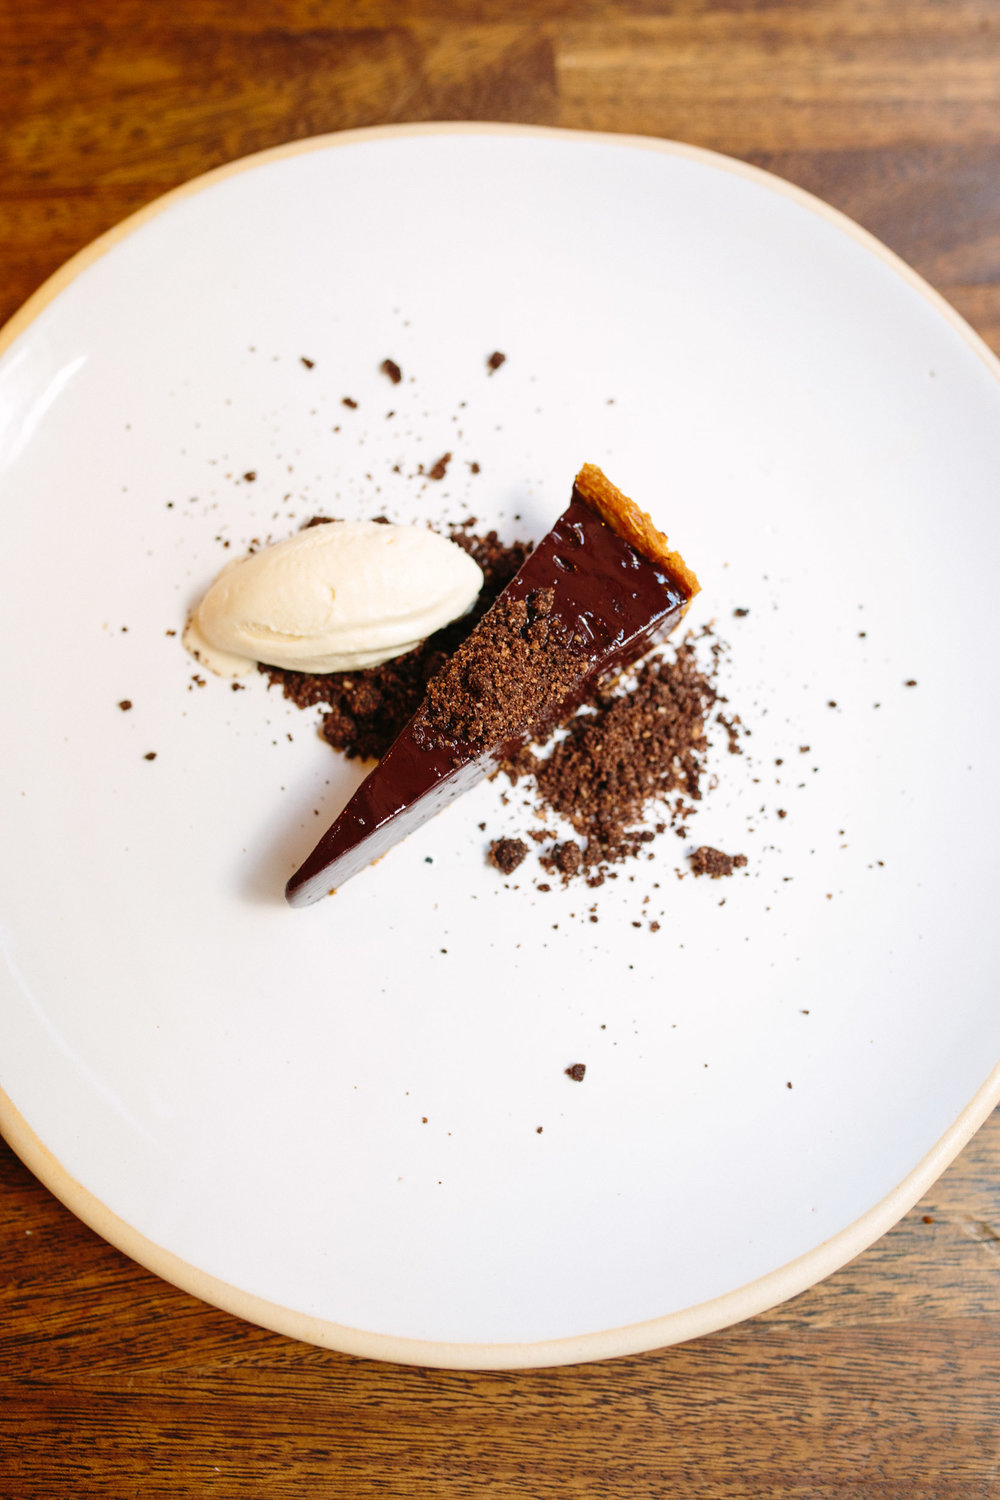 JamesCochranEC3-ChocolateTart.jpg